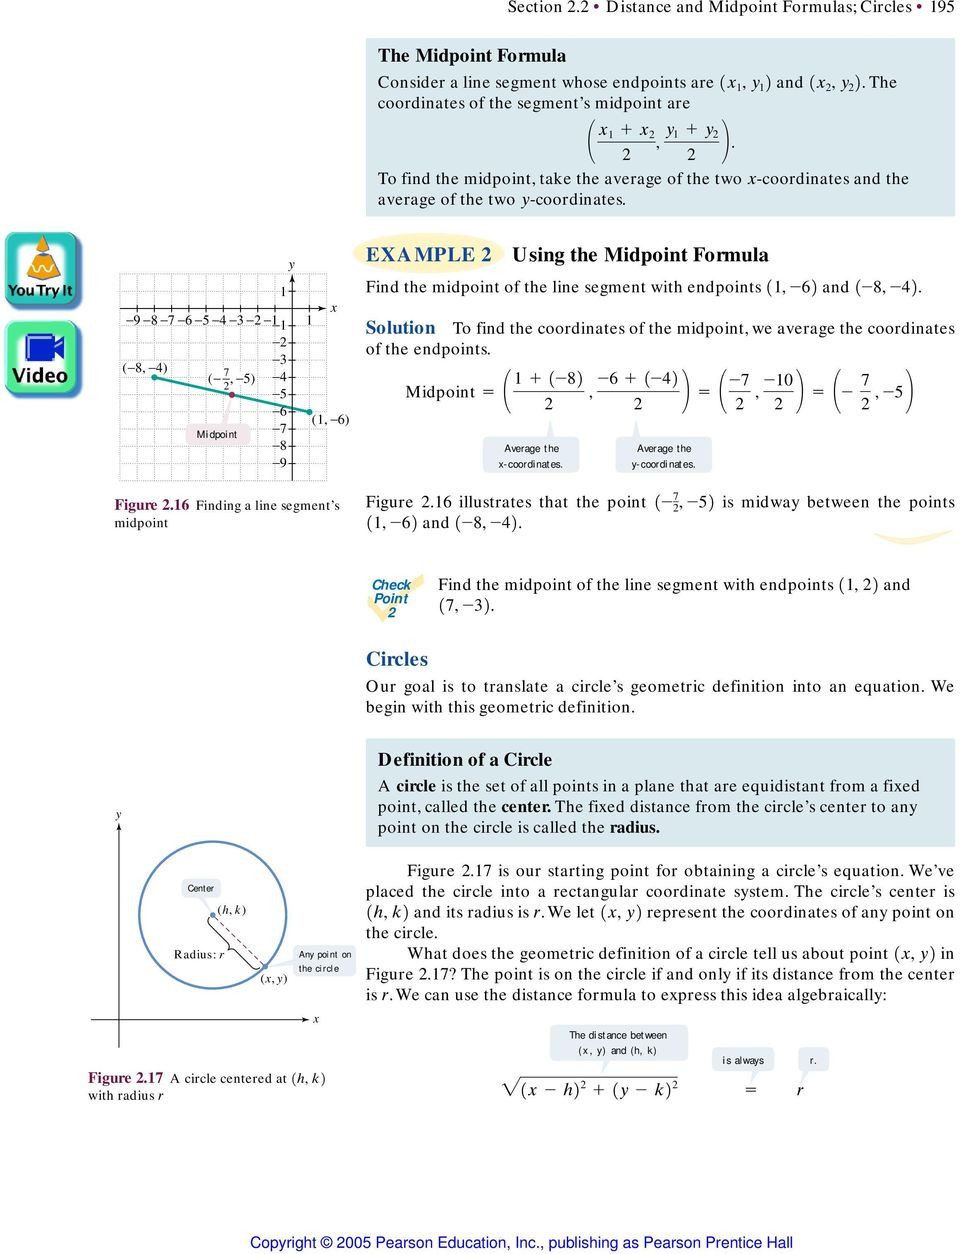 Distance and Midpoint Worksheet Answers Section 2 2 Distance and Midpoint formulas Circles Pdf